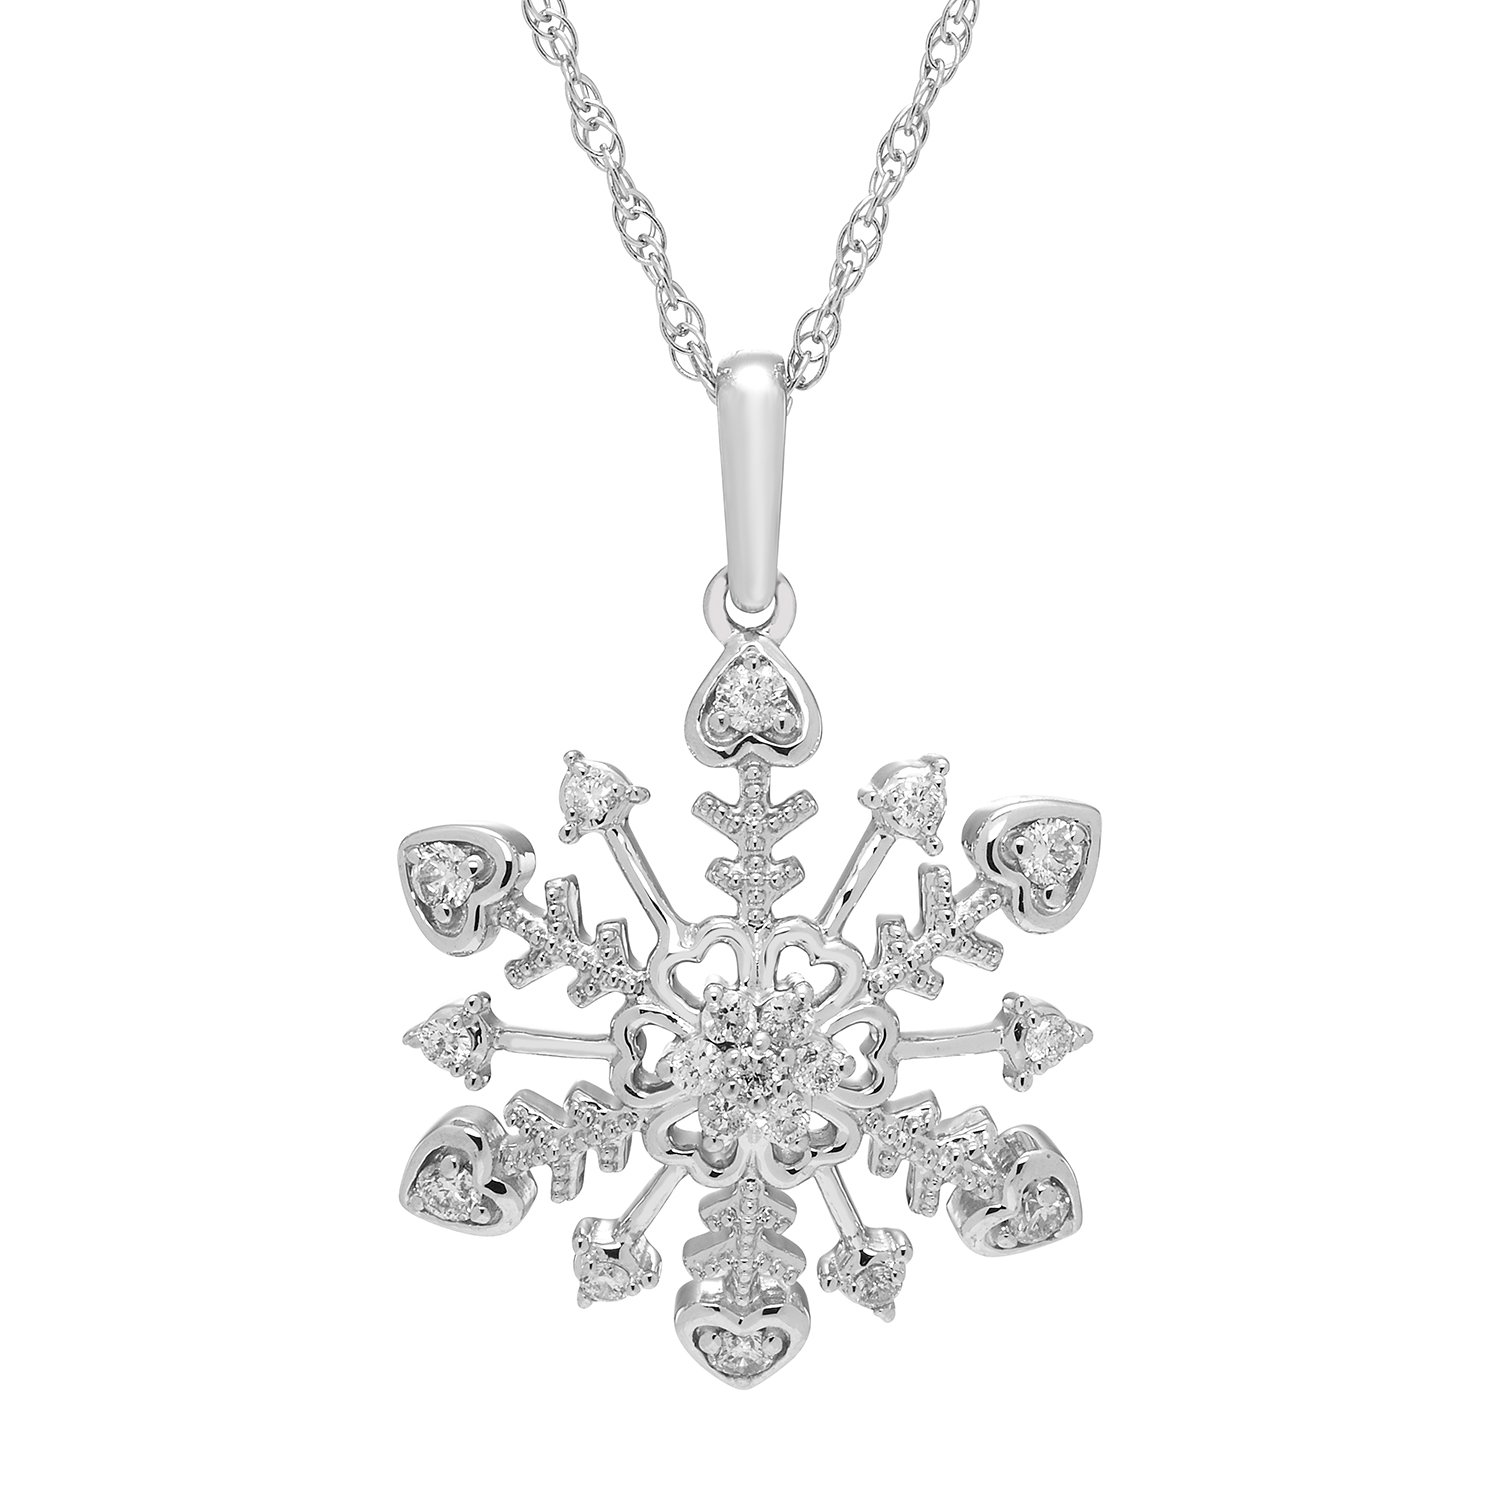 925 Sterling Silver 1/4 Cttw. Diamond Snowflake Pendant Necklace with 18'' Chain